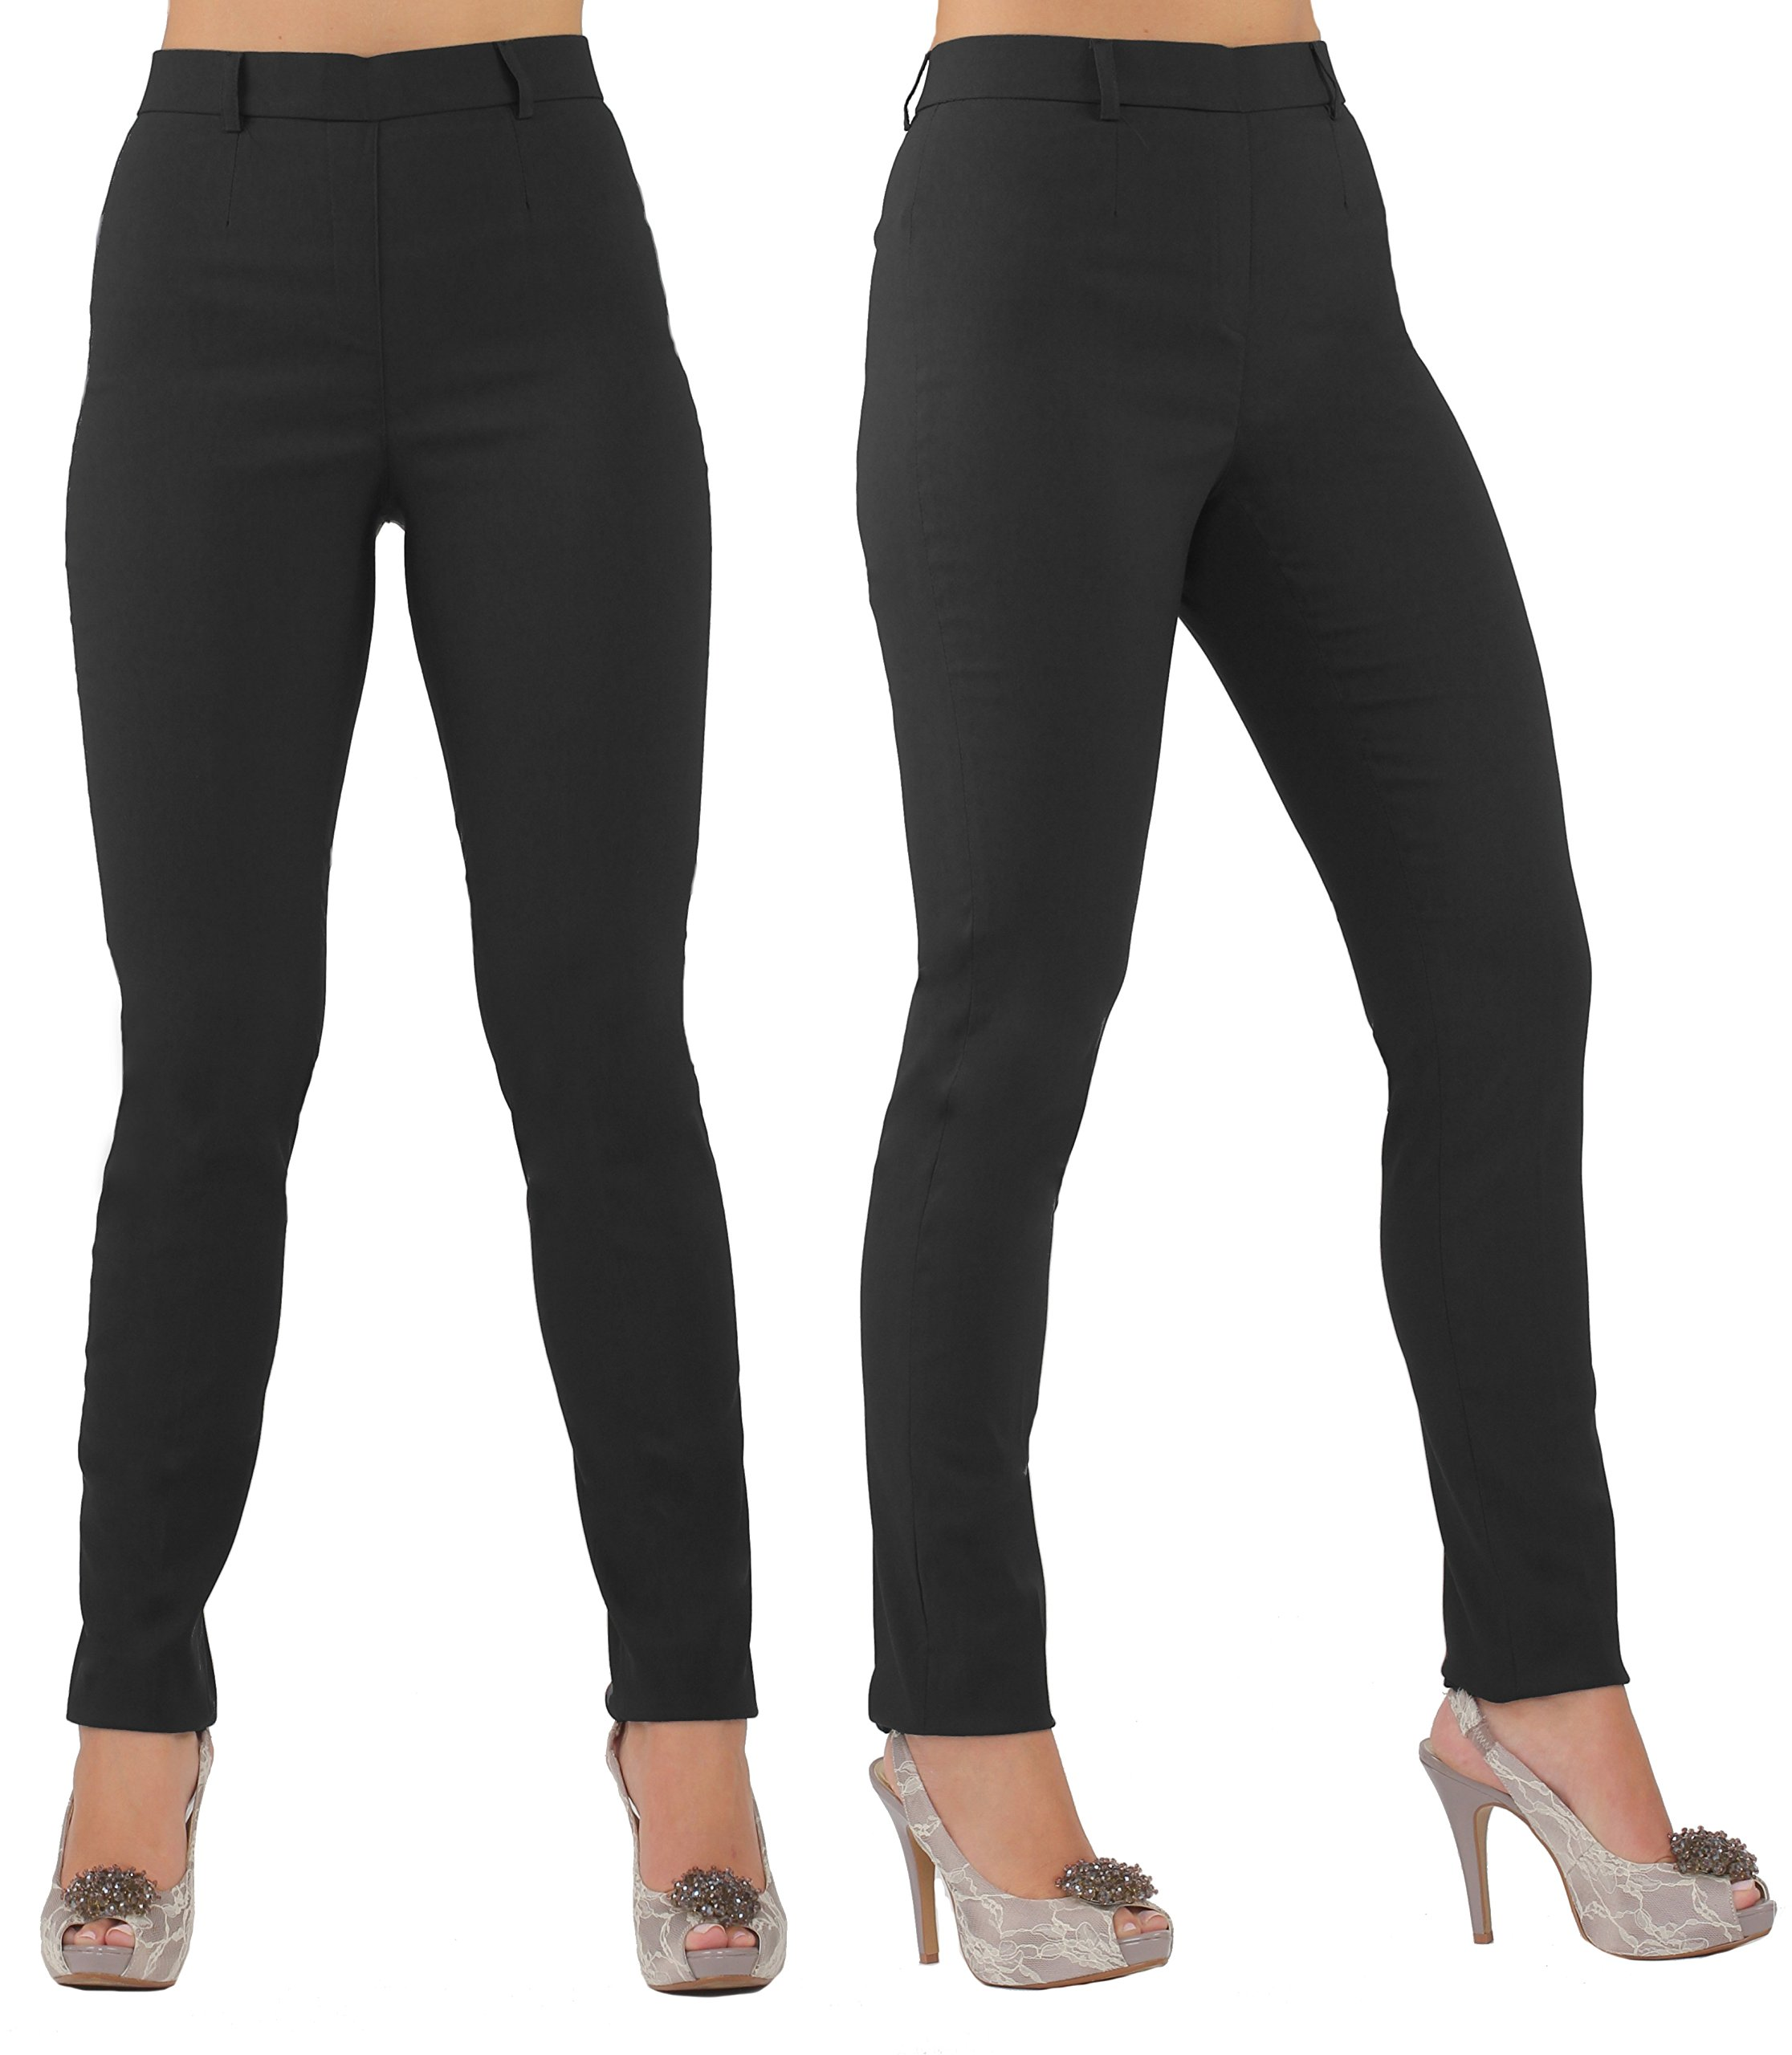 Lior Paris Women's LULU a Skinny Tapered Leg Pull on Pant Featuring a Flat Fit Front and Functional Belt Loops (5,Black)